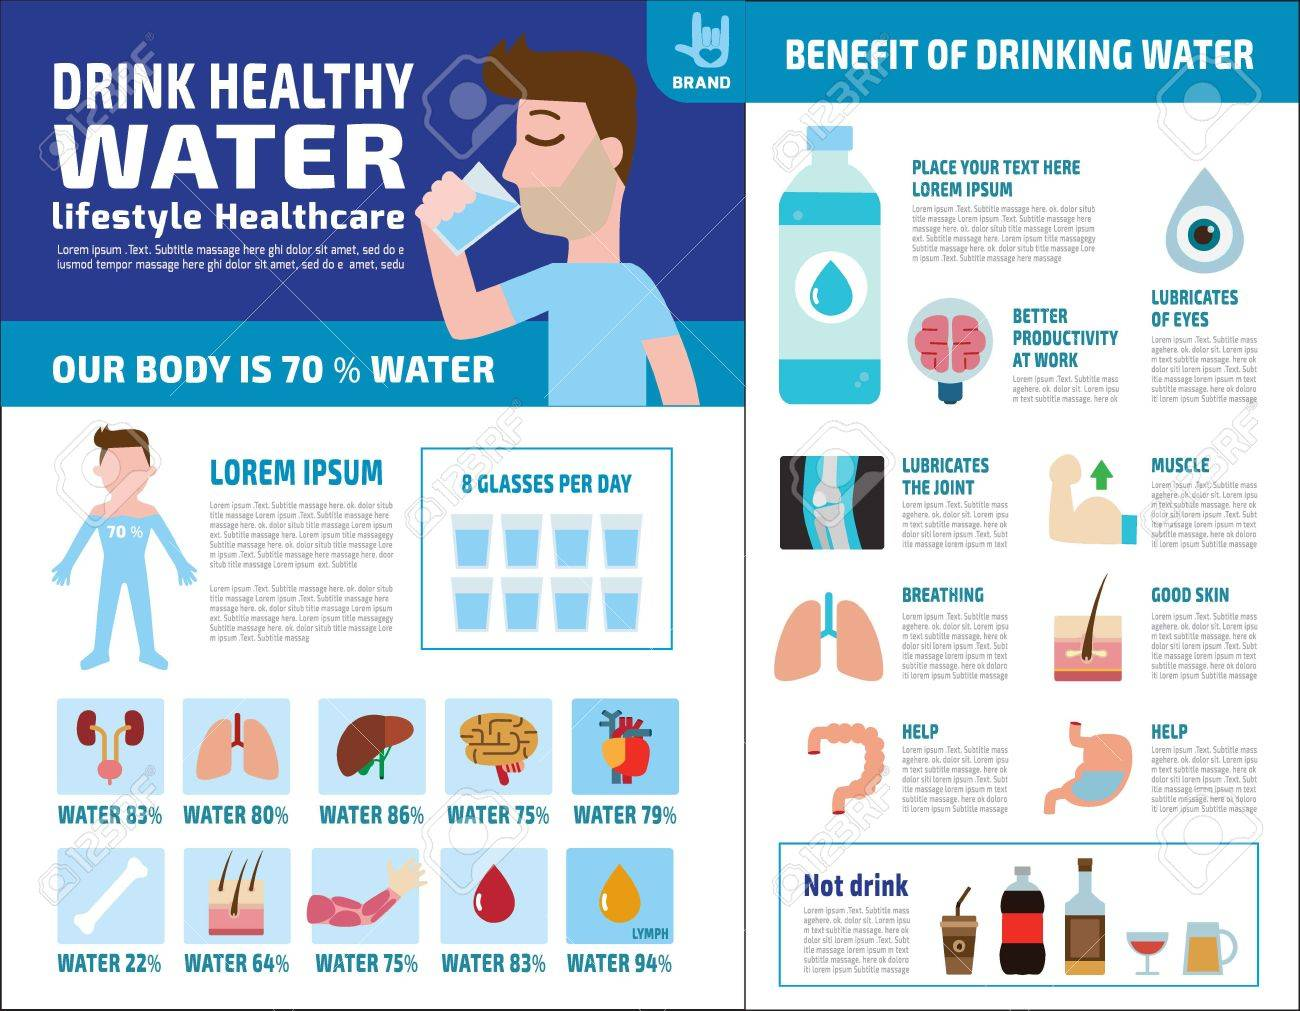 drink healthy water benefits and sourcemedical healthcare concept